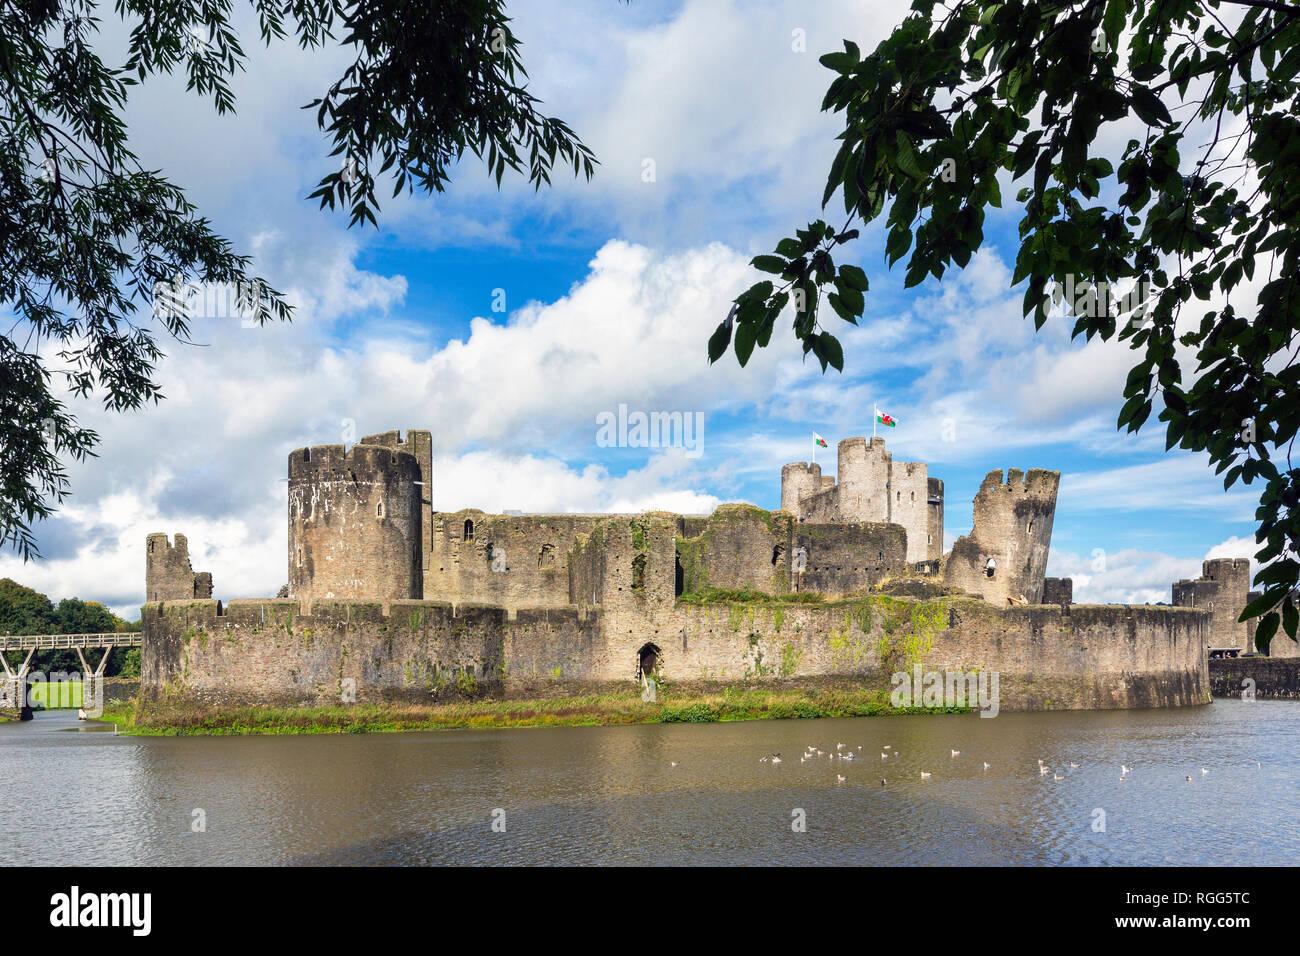 Caerphilly, Caerphilly, Wales, Royaume-Uni. Château de Caerphilly avec ses douves. Photo Stock